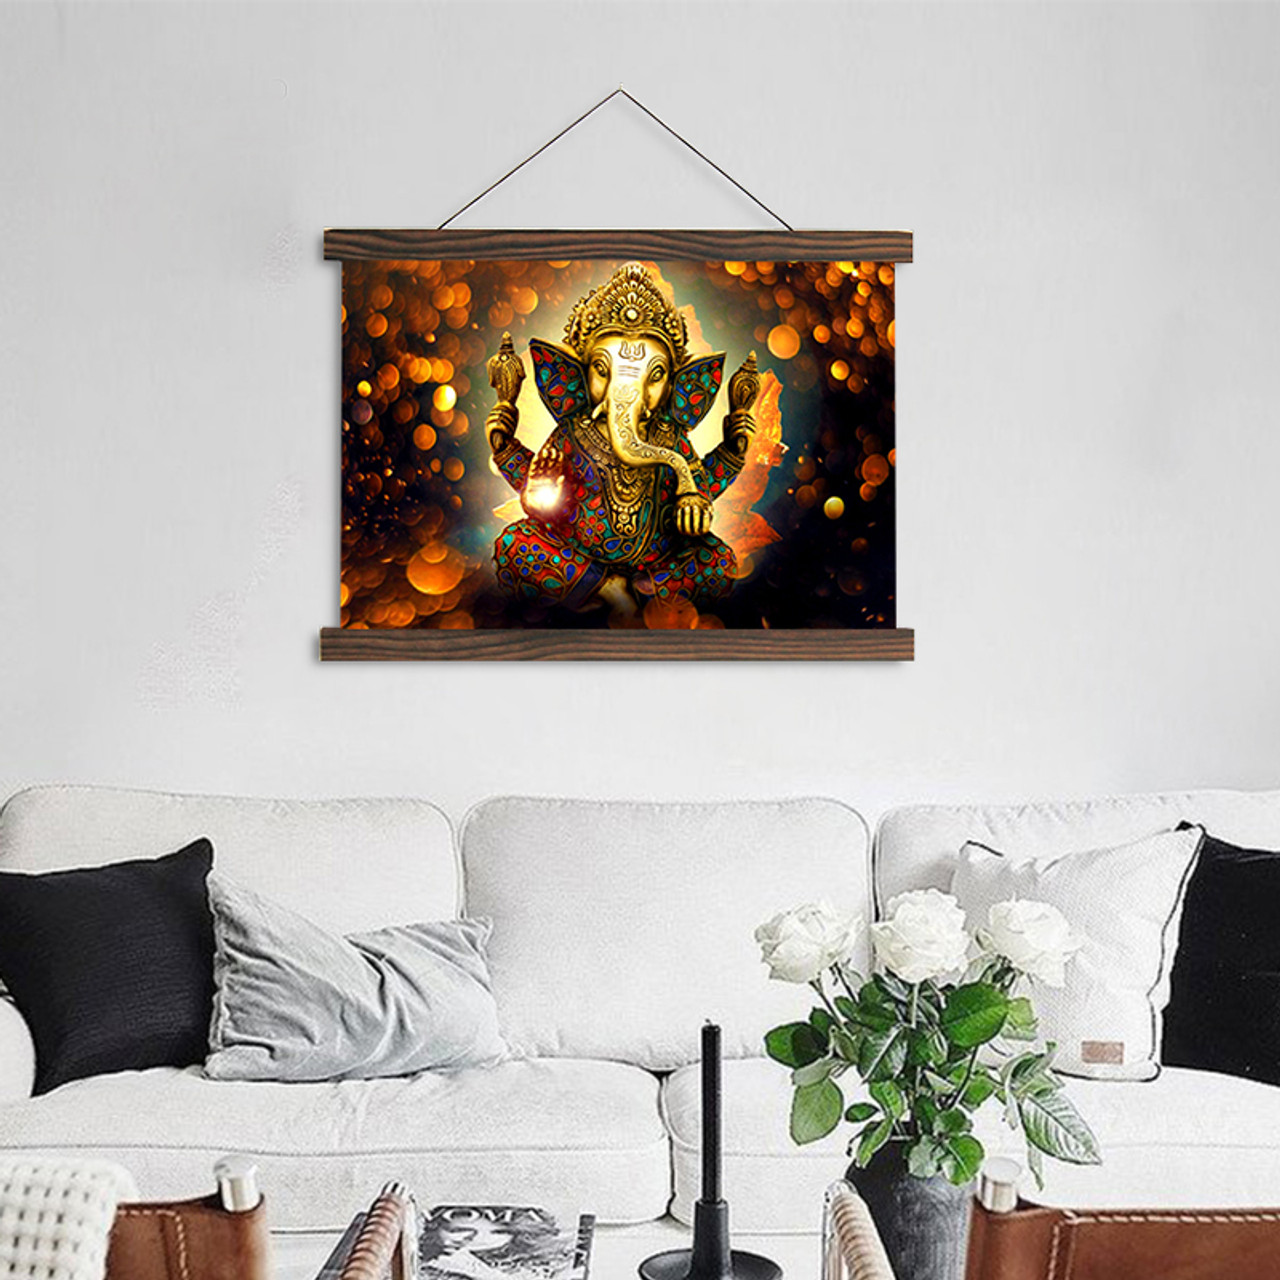 Scroll painting modern wall art hanging canvas painting The Hindu God  Ganesh HD printed pictures for living room decoration